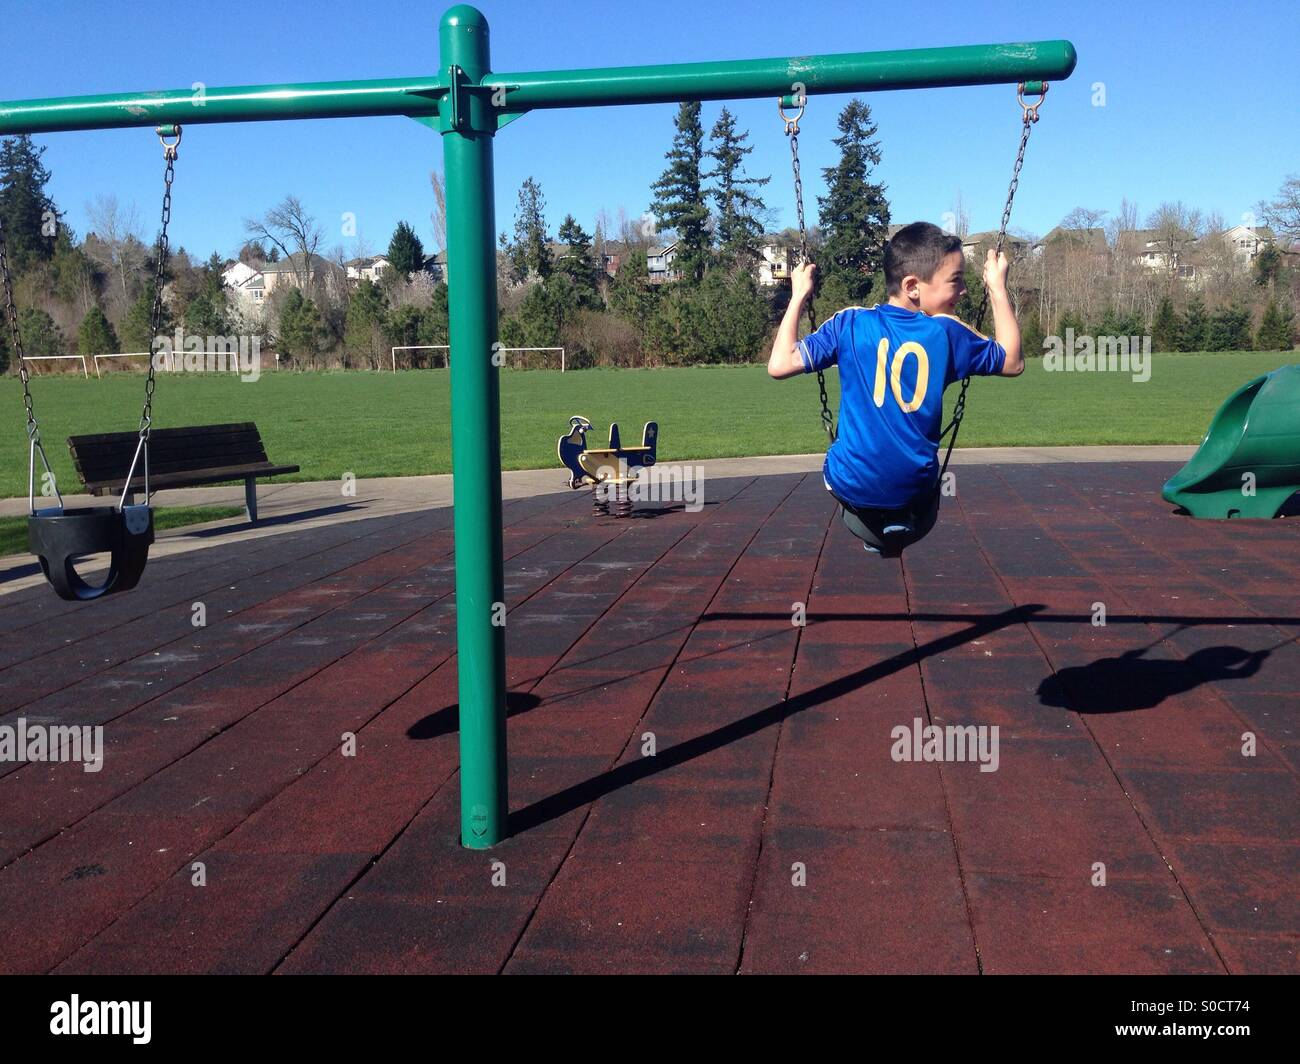 Boy on swing on playground at park - Stock Image